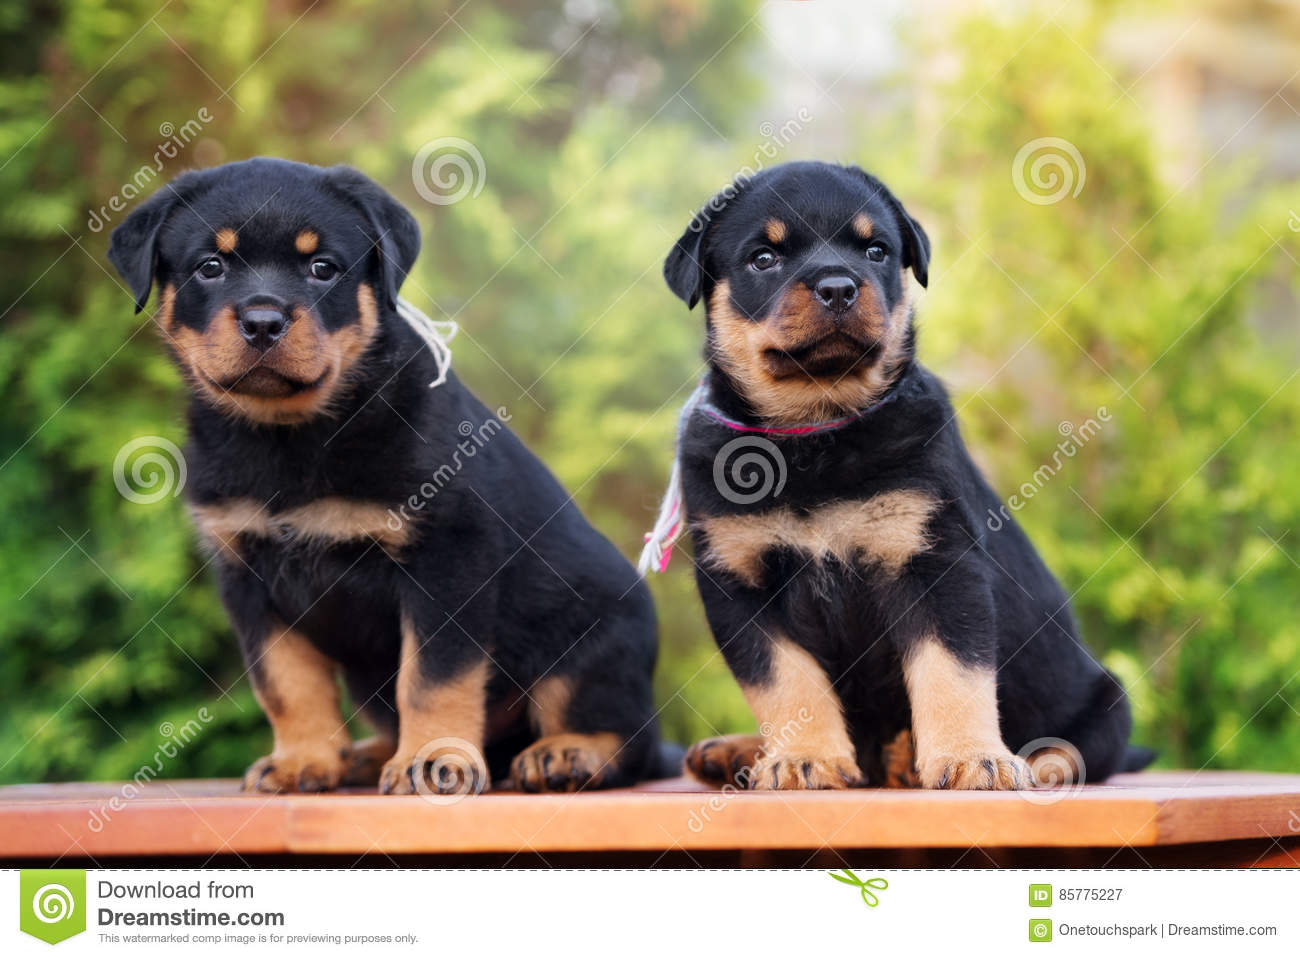 Two Rottweiler Puppies Outdoors Stock Image - Image of